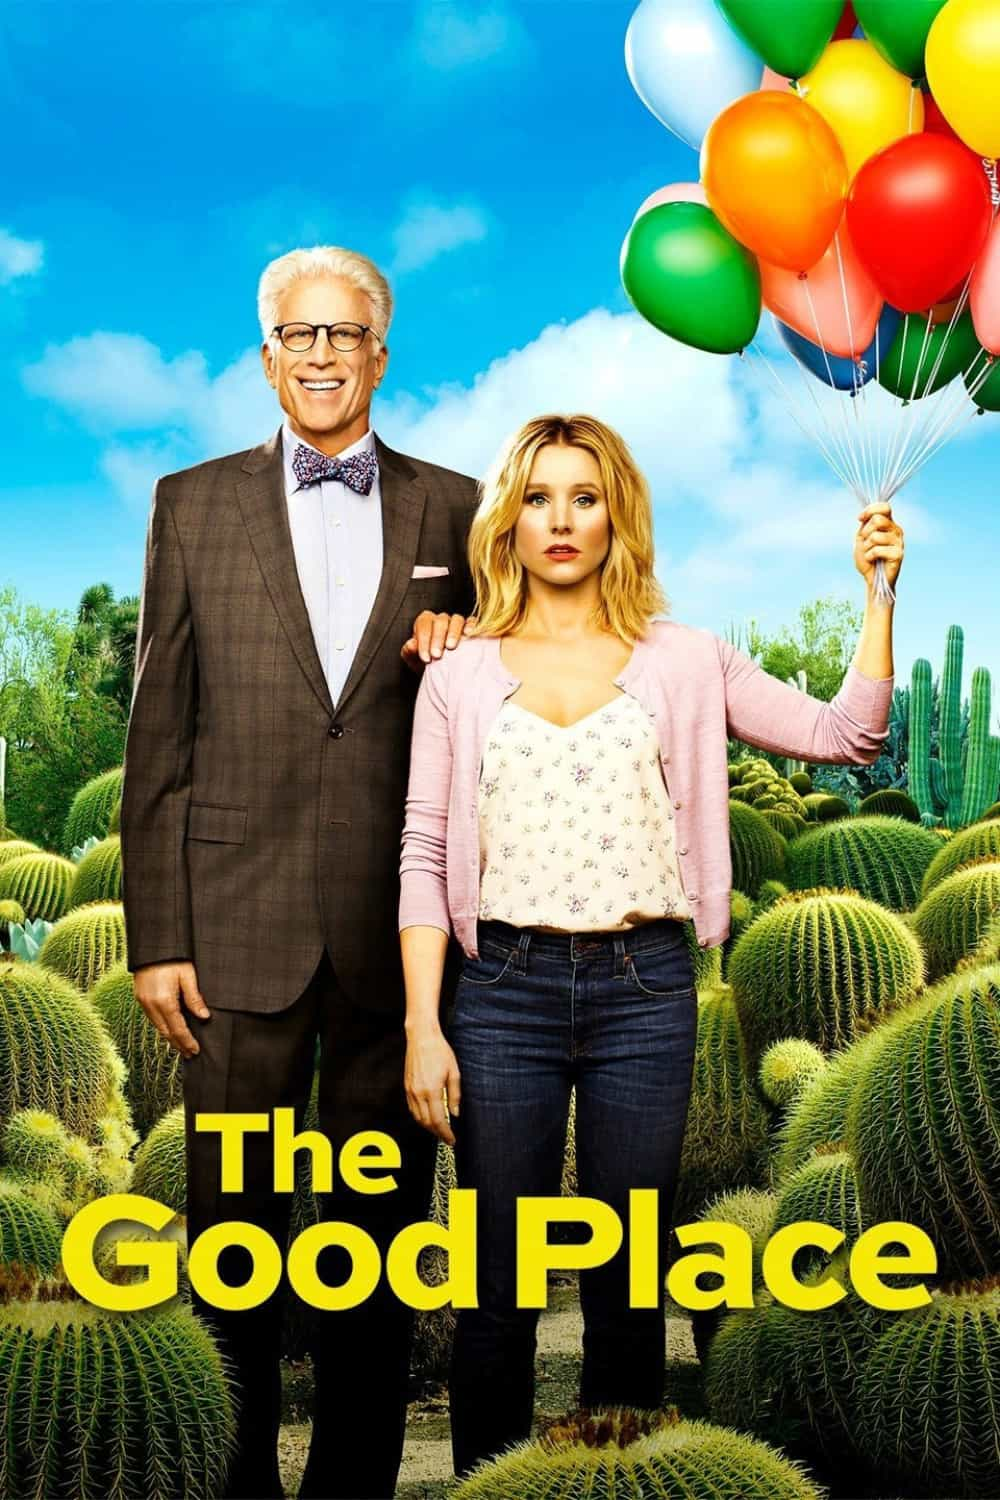 The Good Place, 2016